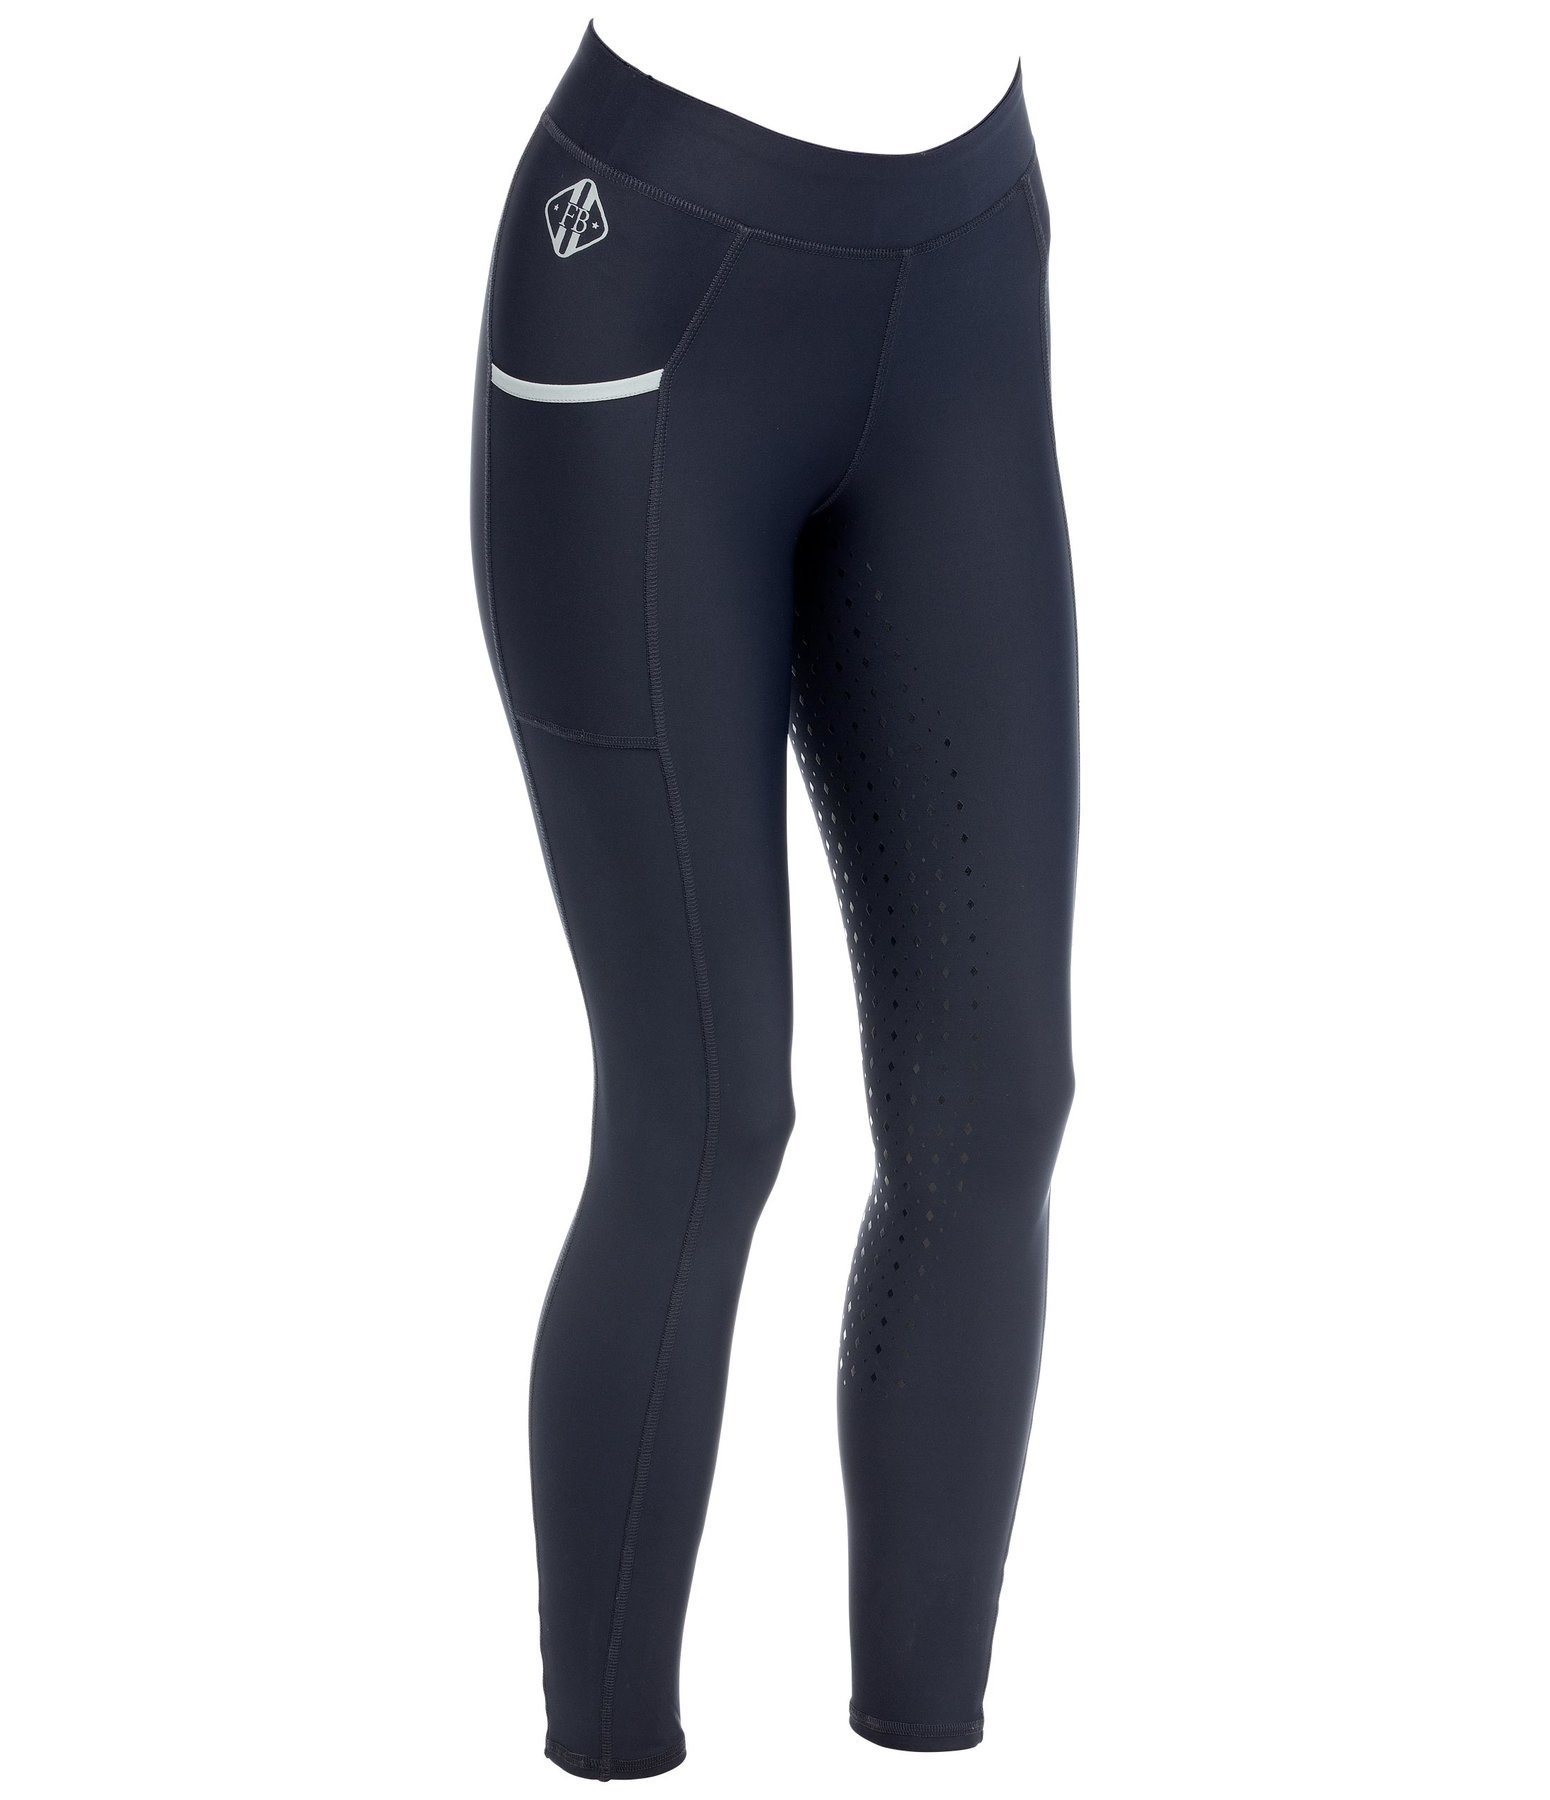 Grip Full-Seat Riding Leggings Kiara